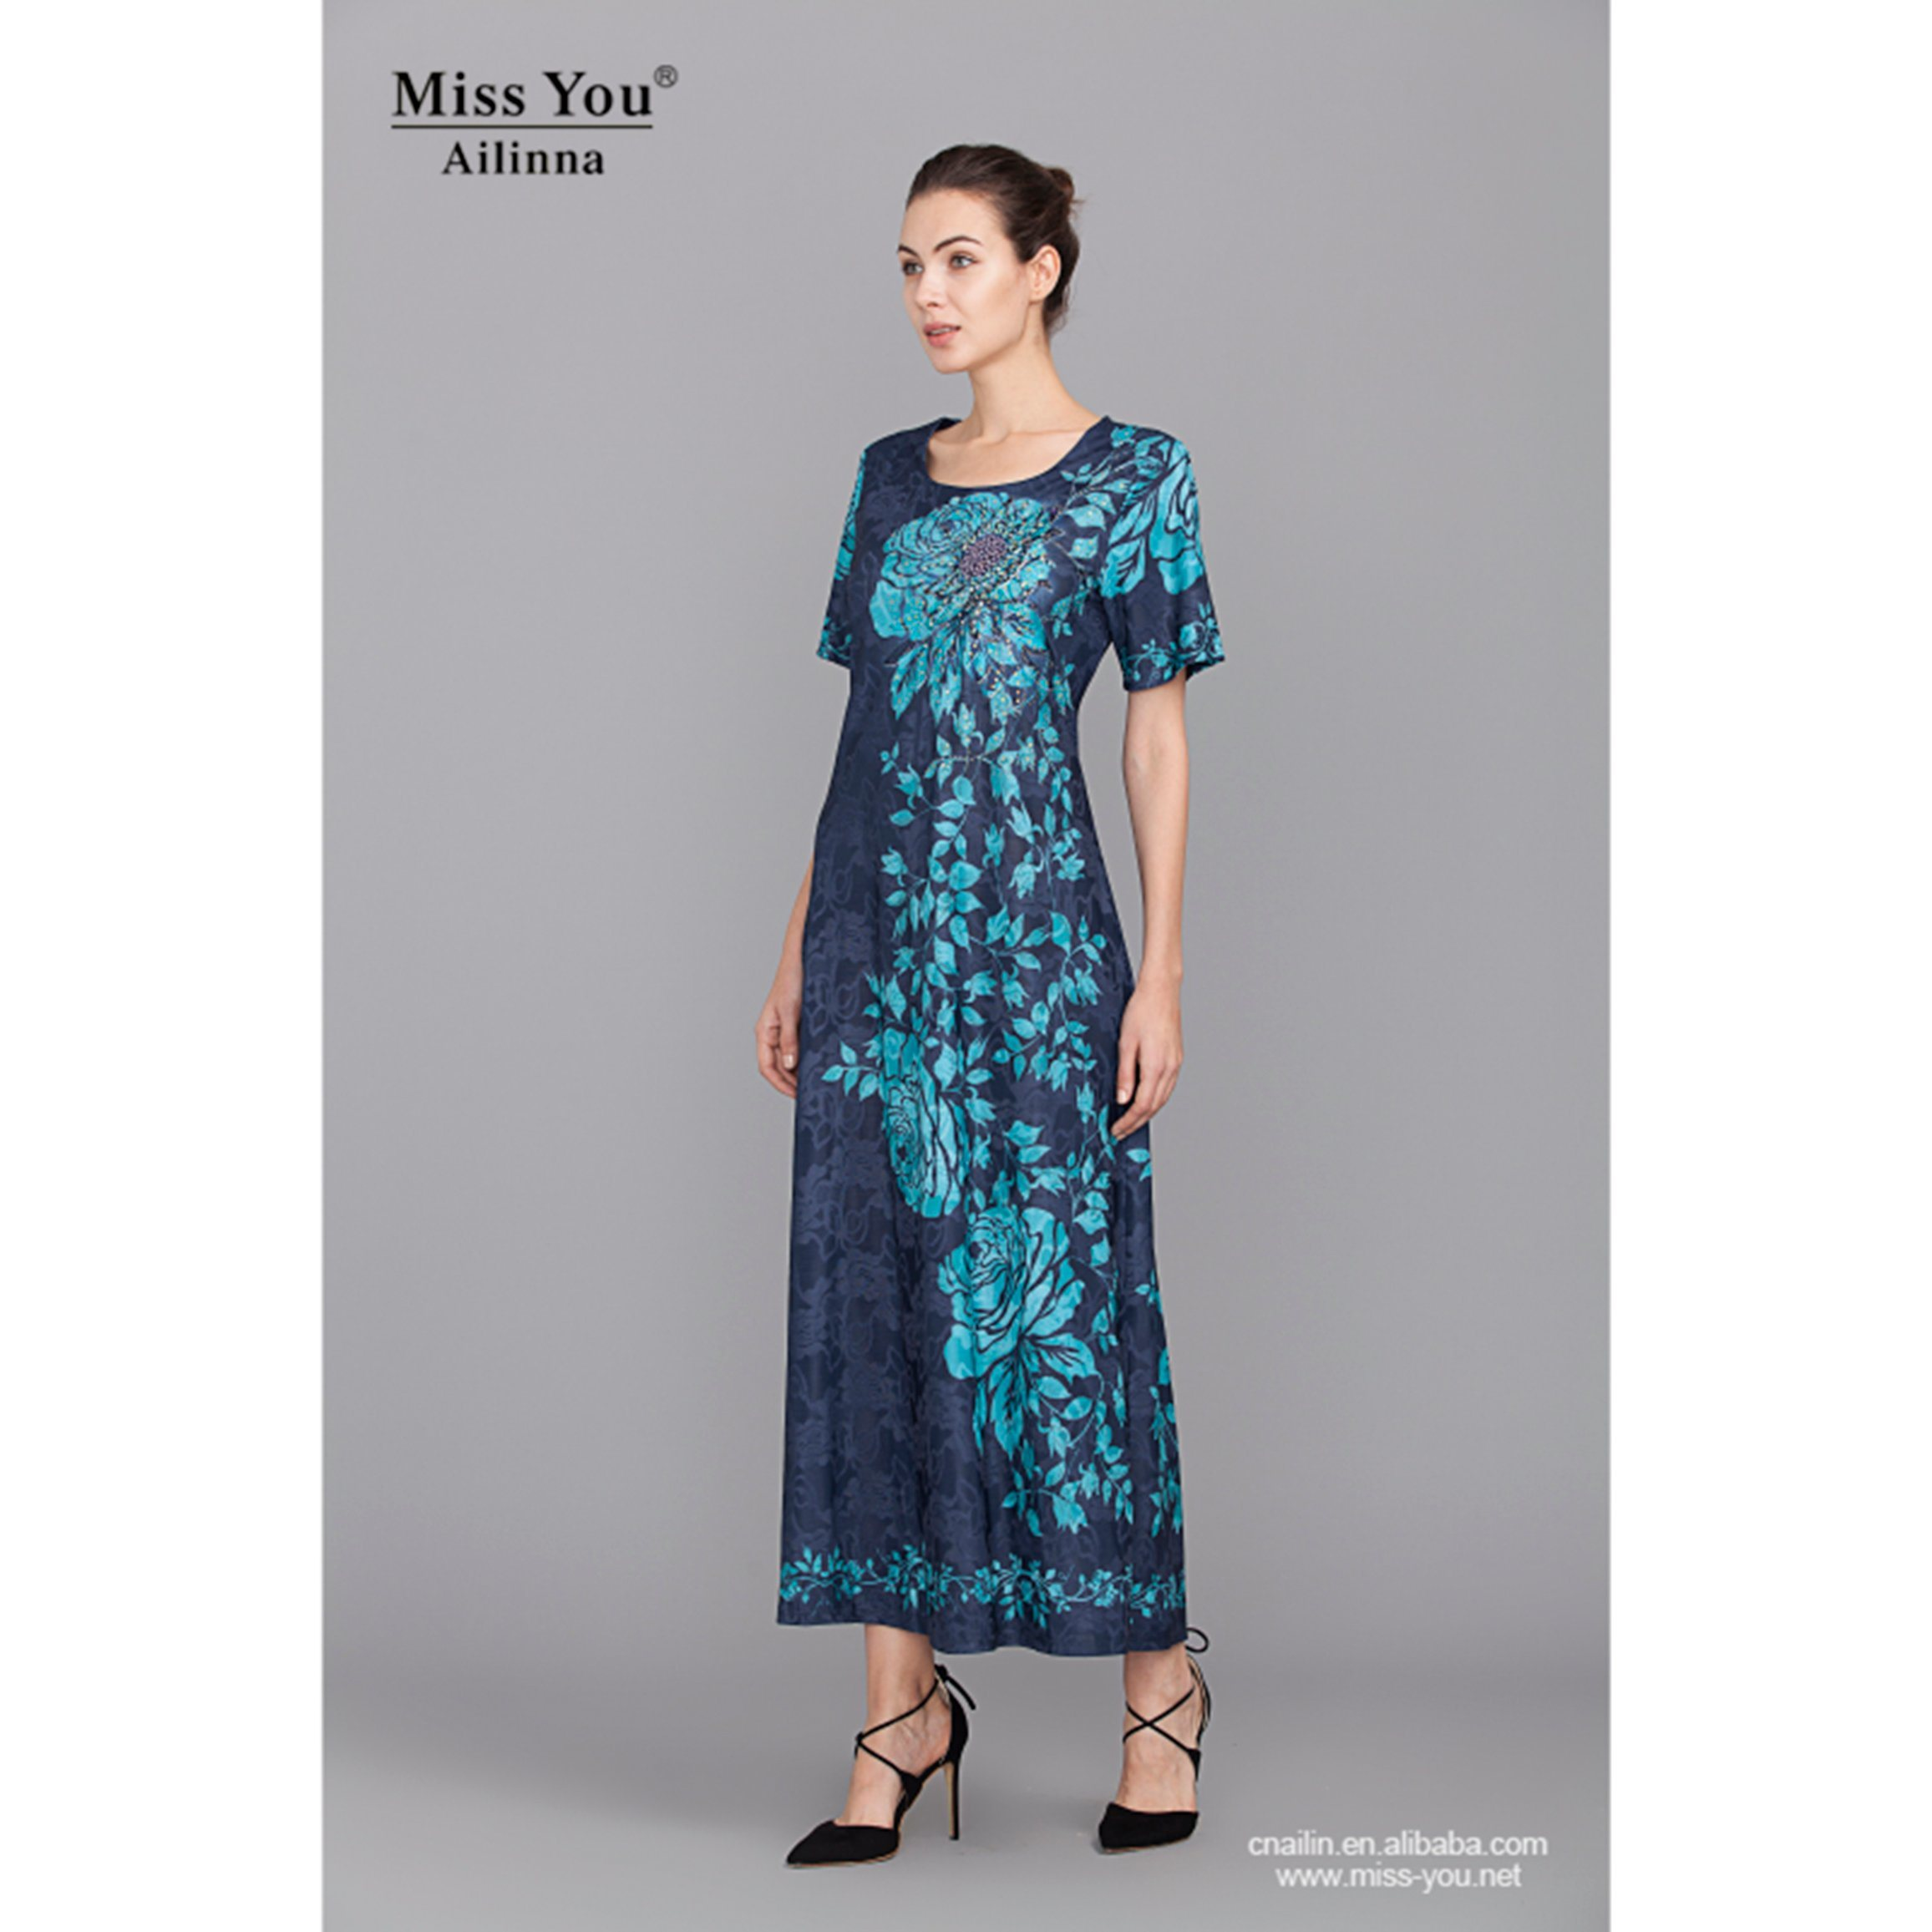 Miss You Ailinna 304707 Low Price Jacquard Cotton Dress Distributor Long Beaded Floral Dress